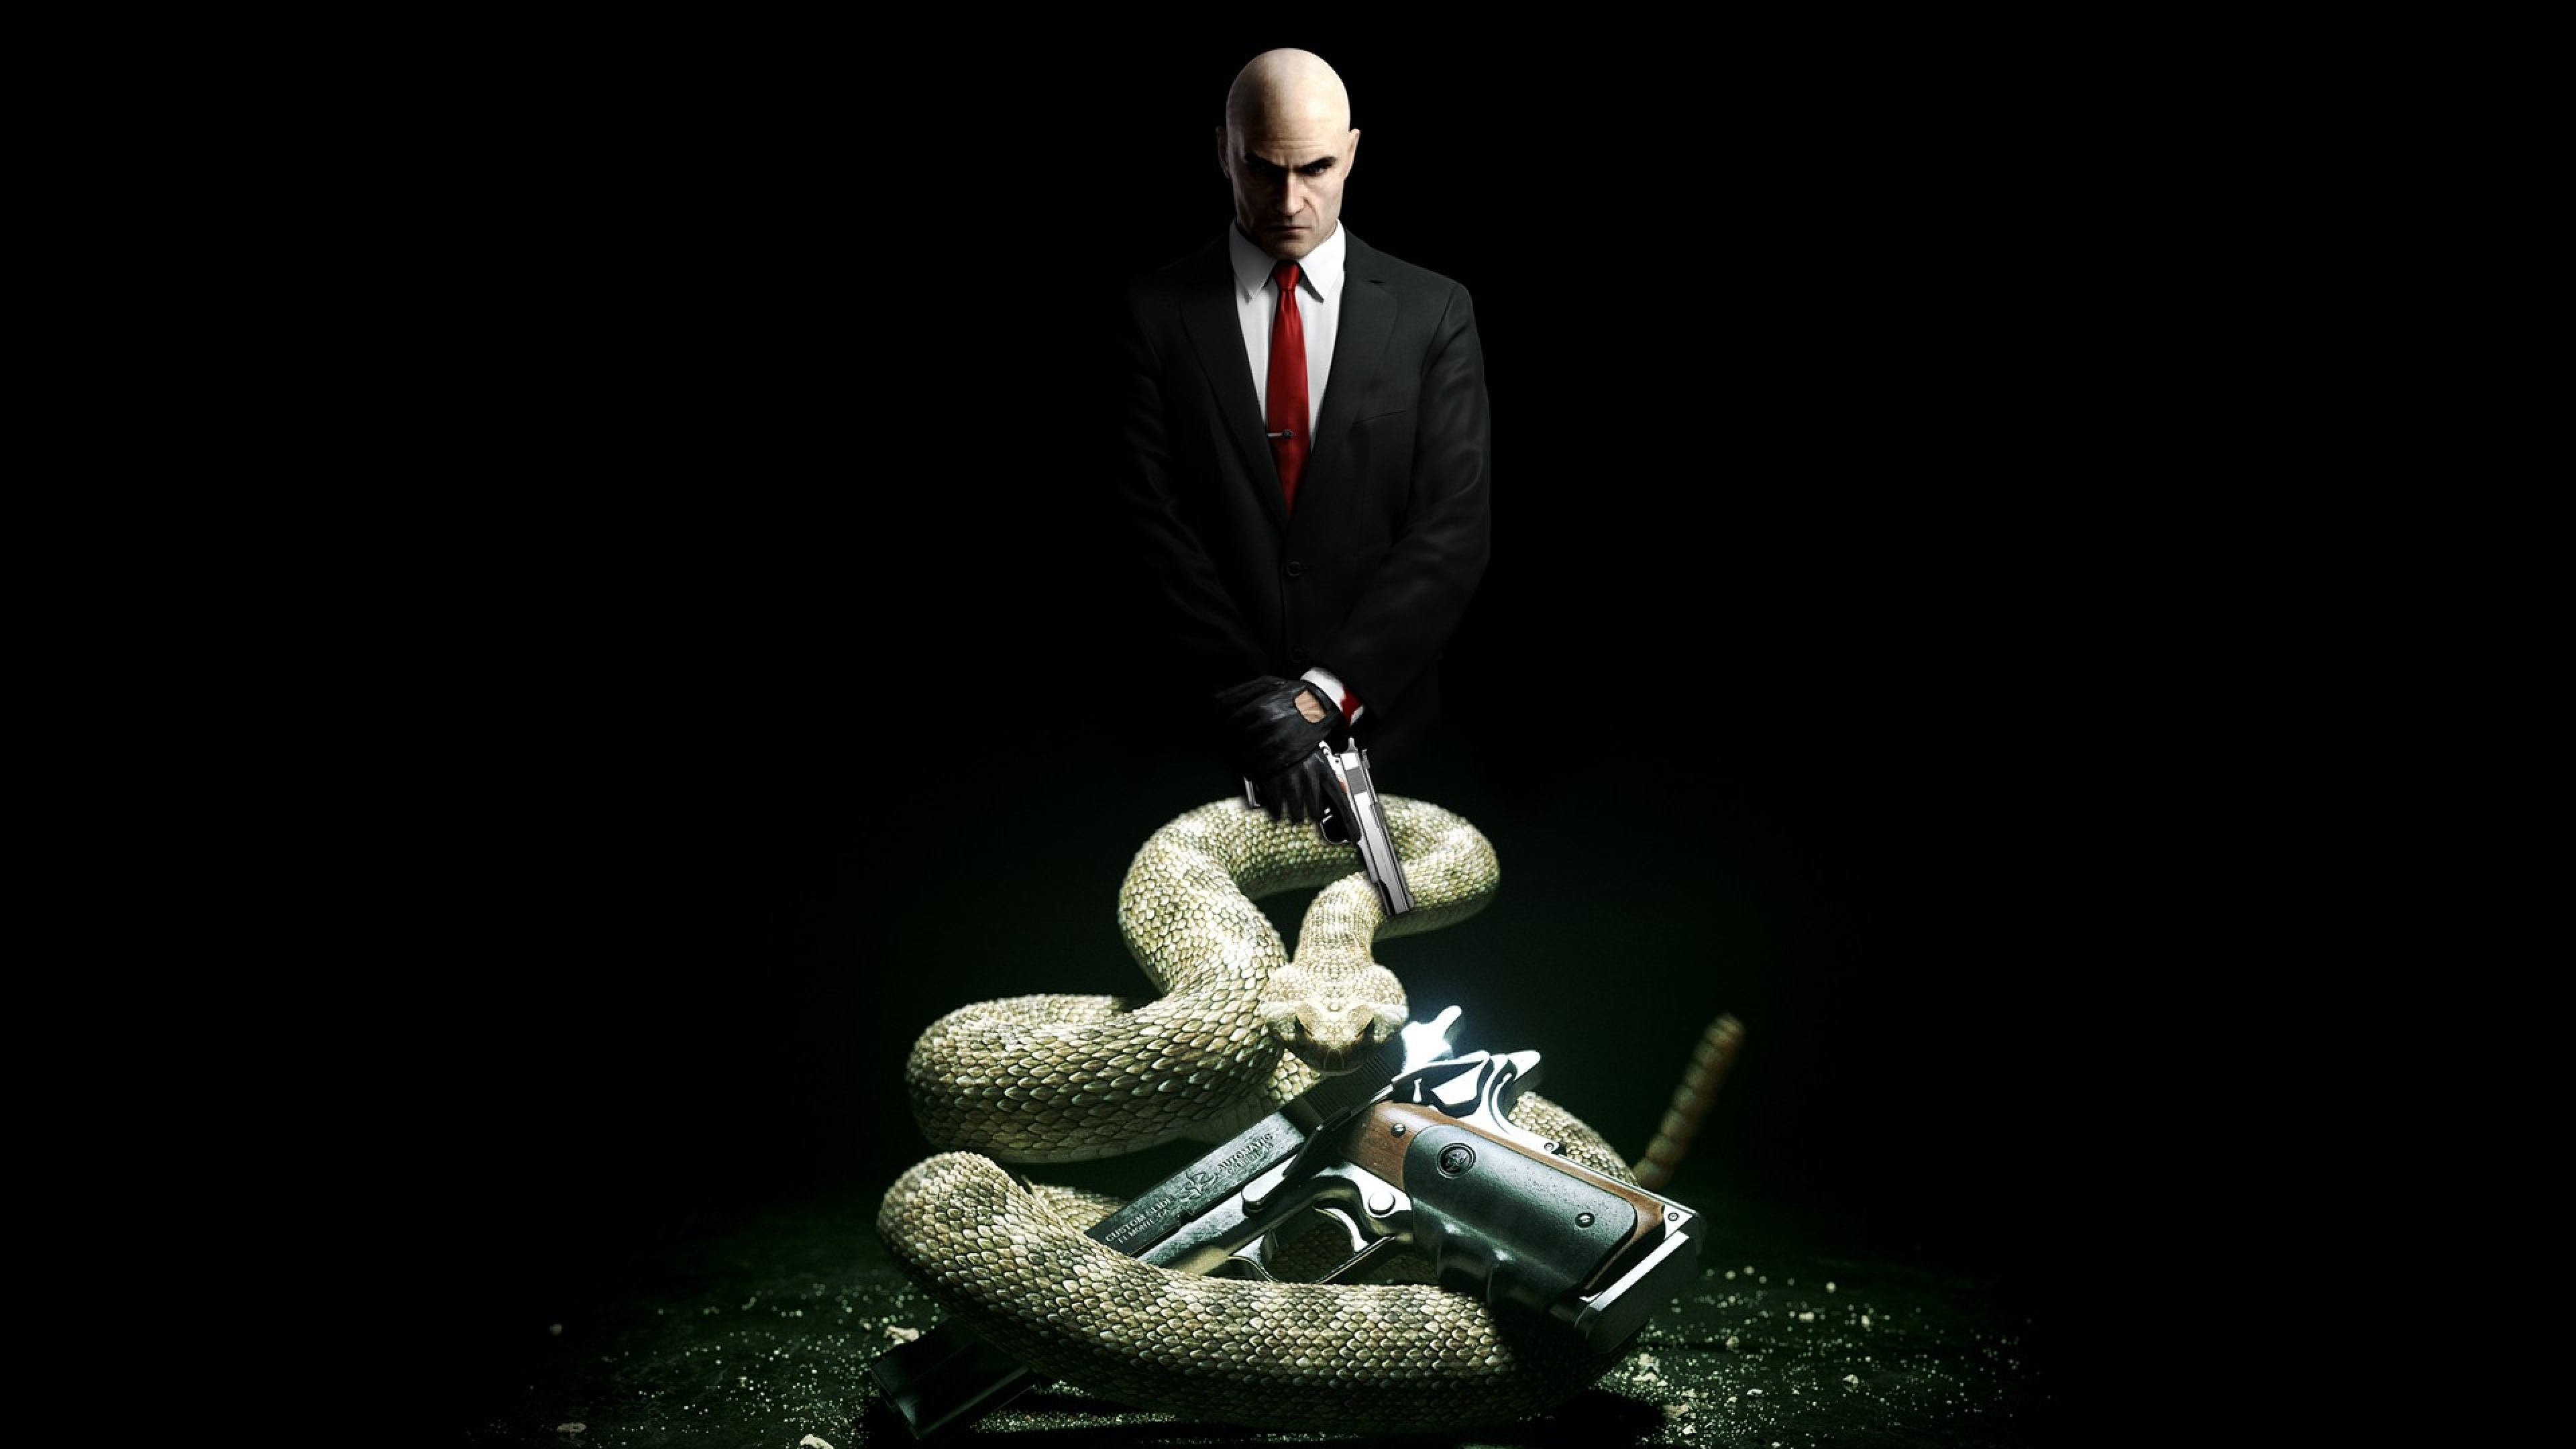 hitman game wallpapers high quality download free